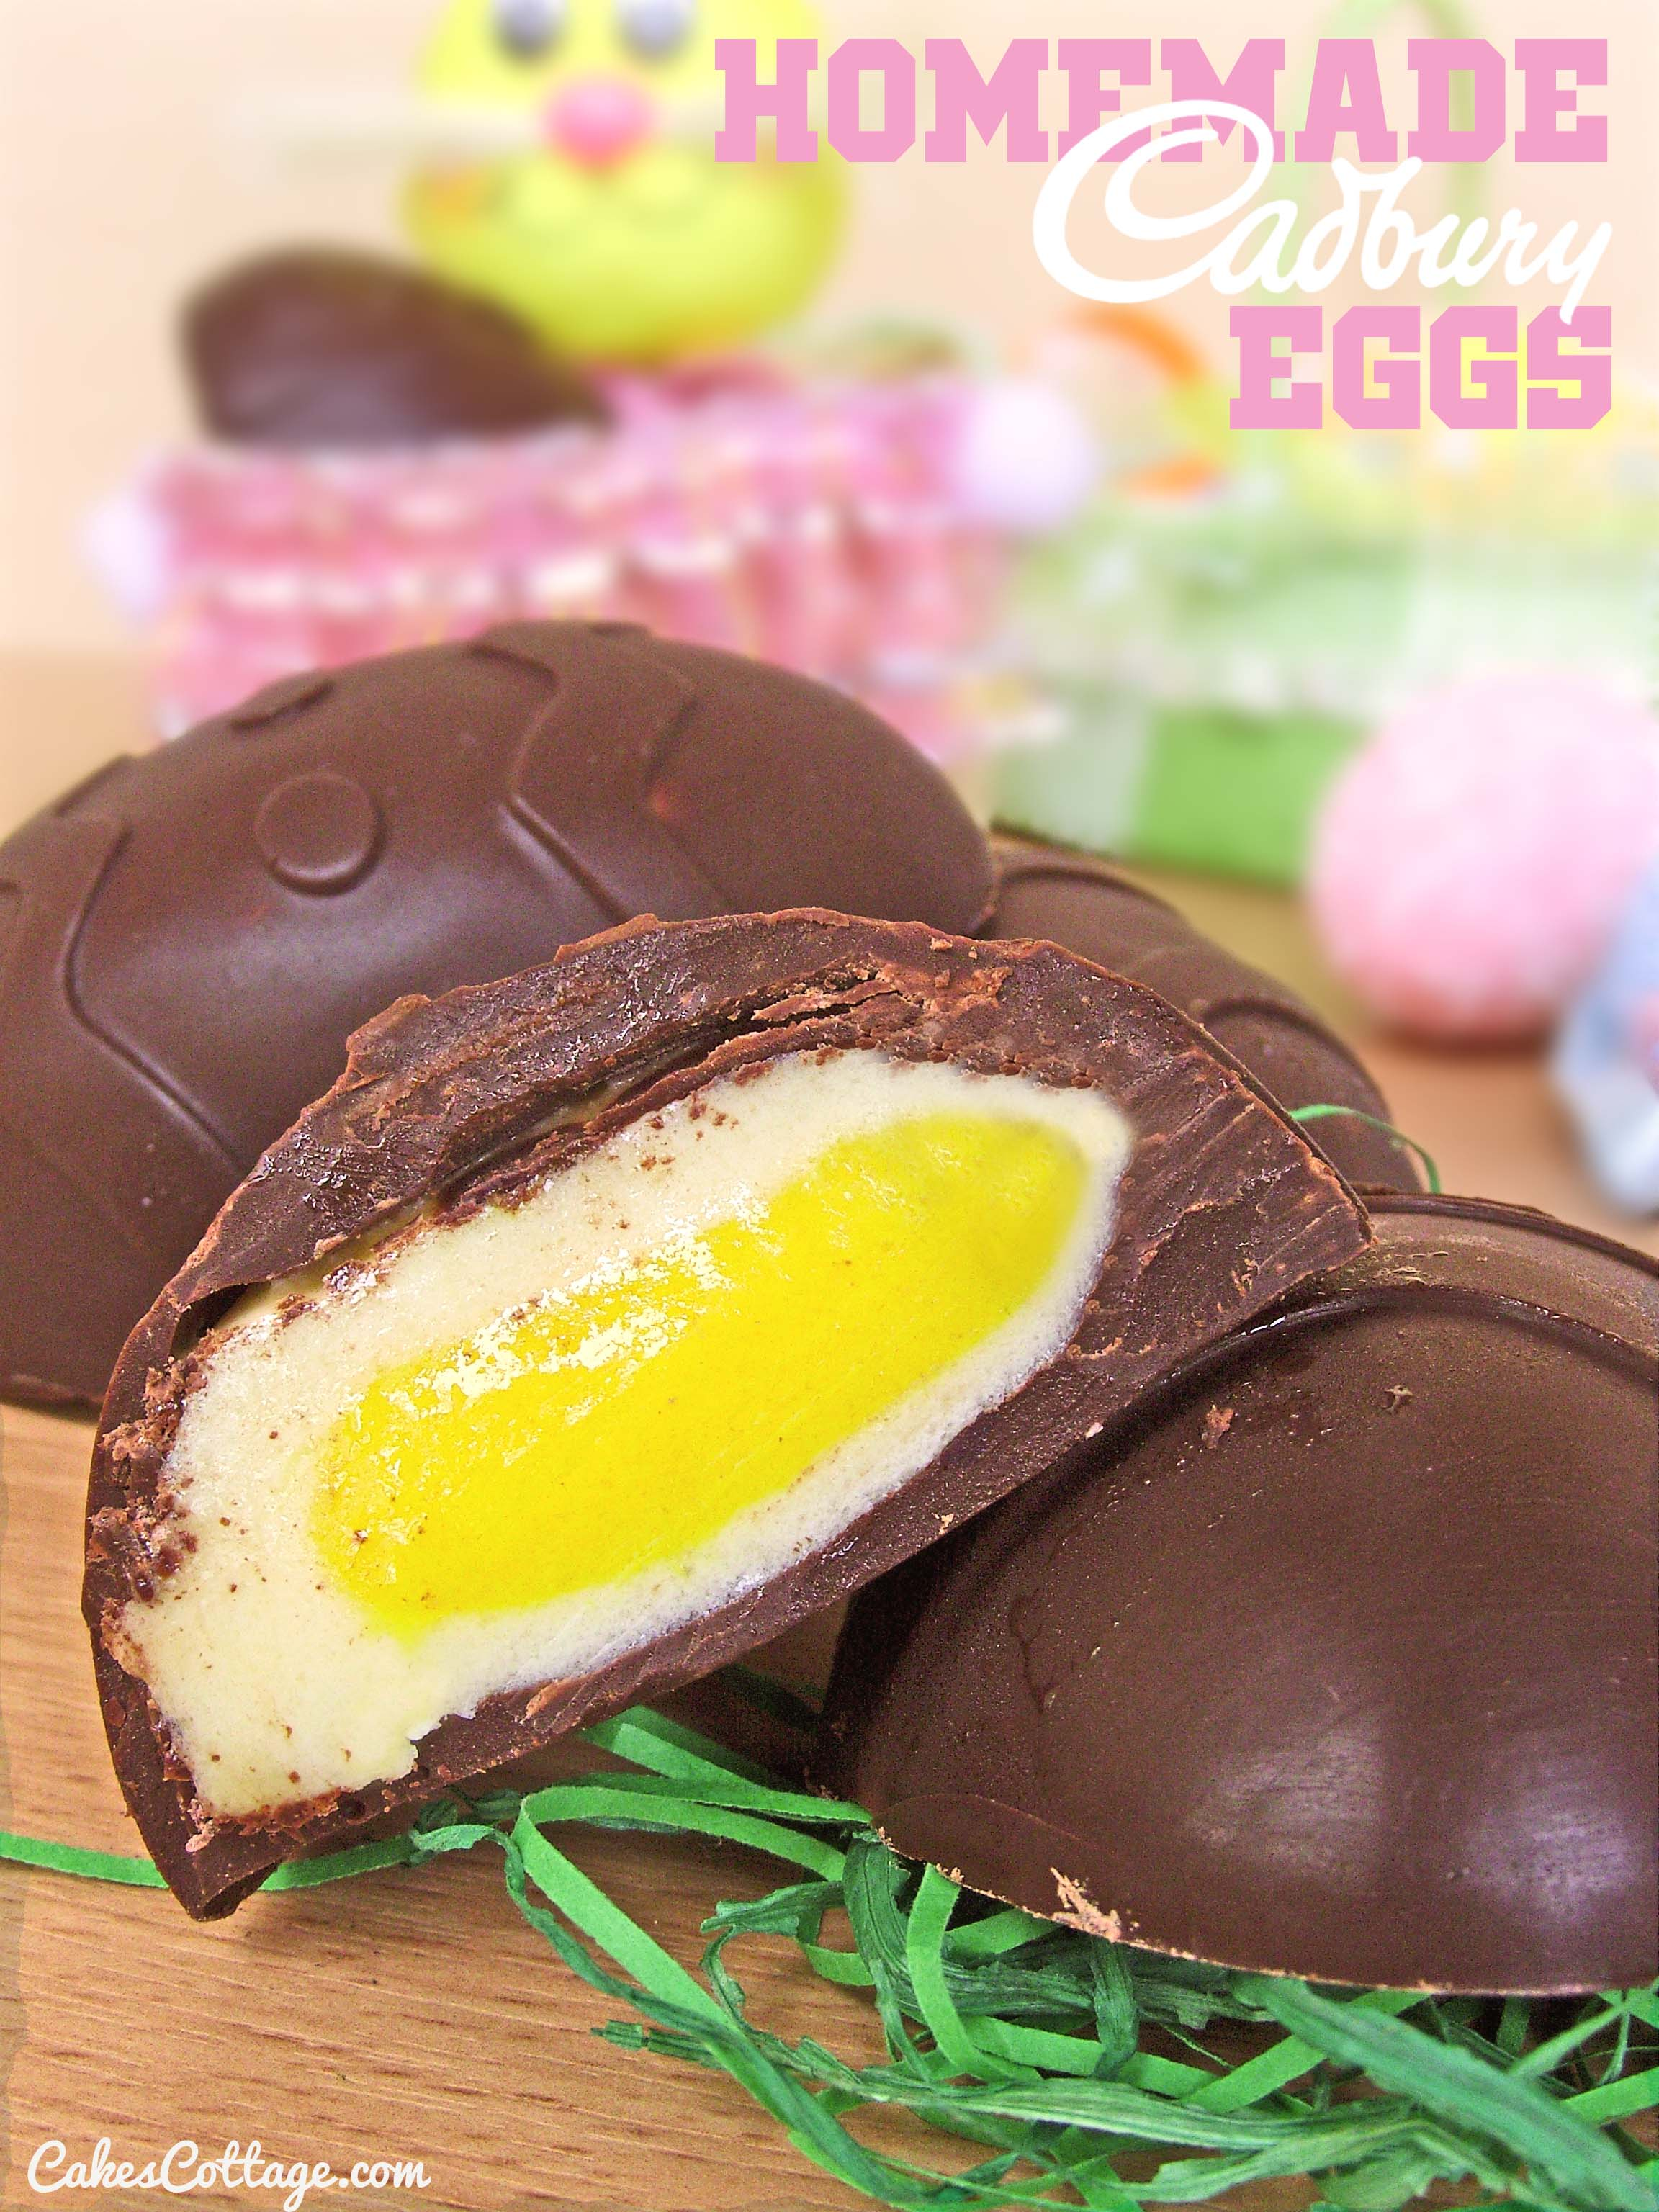 Homemade Cadbury Eggs | Cakescottage